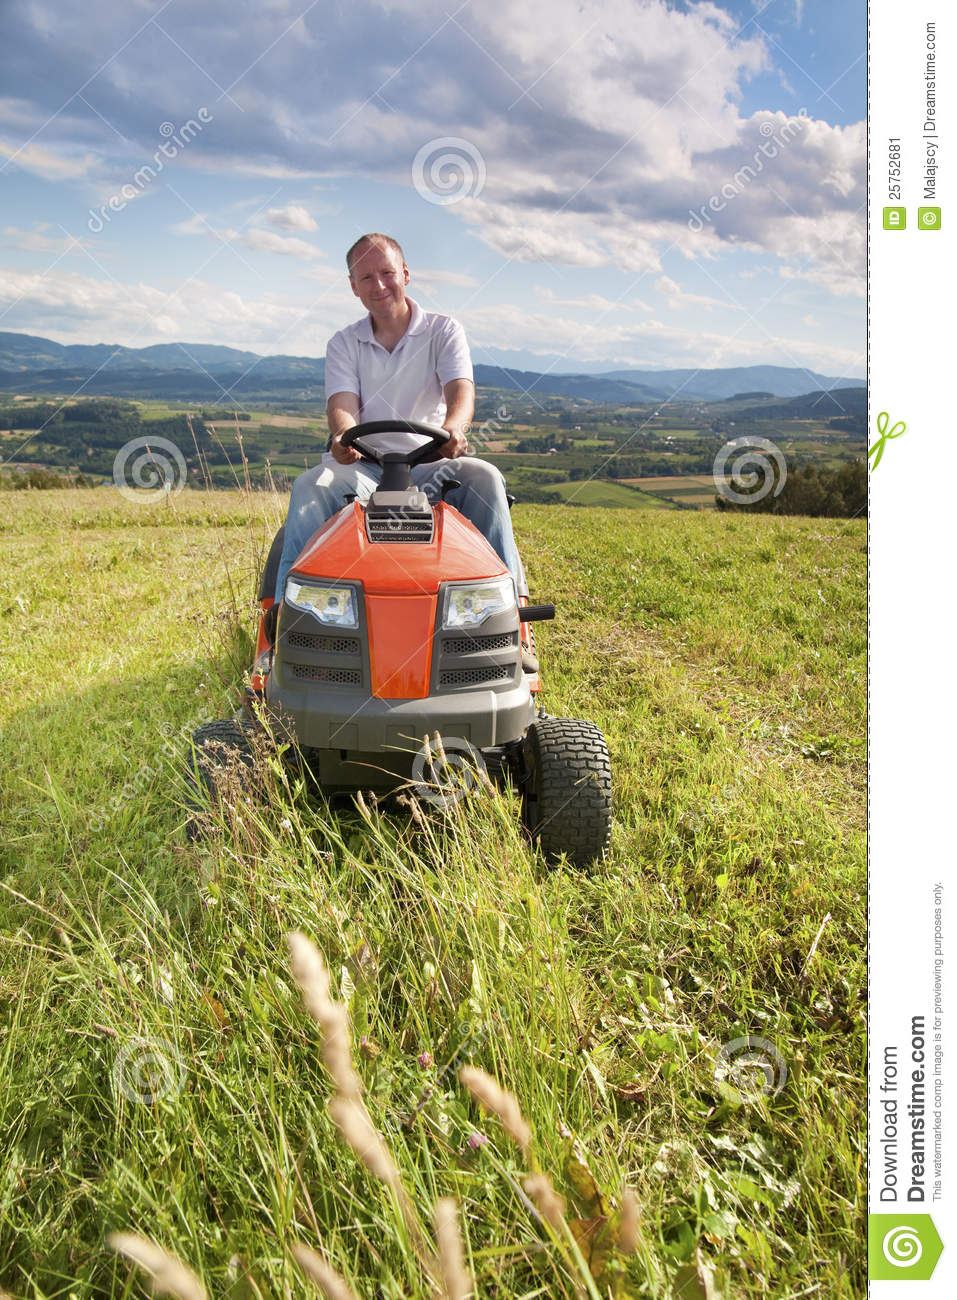 Man Riding Lawn Mower : Man riding a lawn tractor stock image